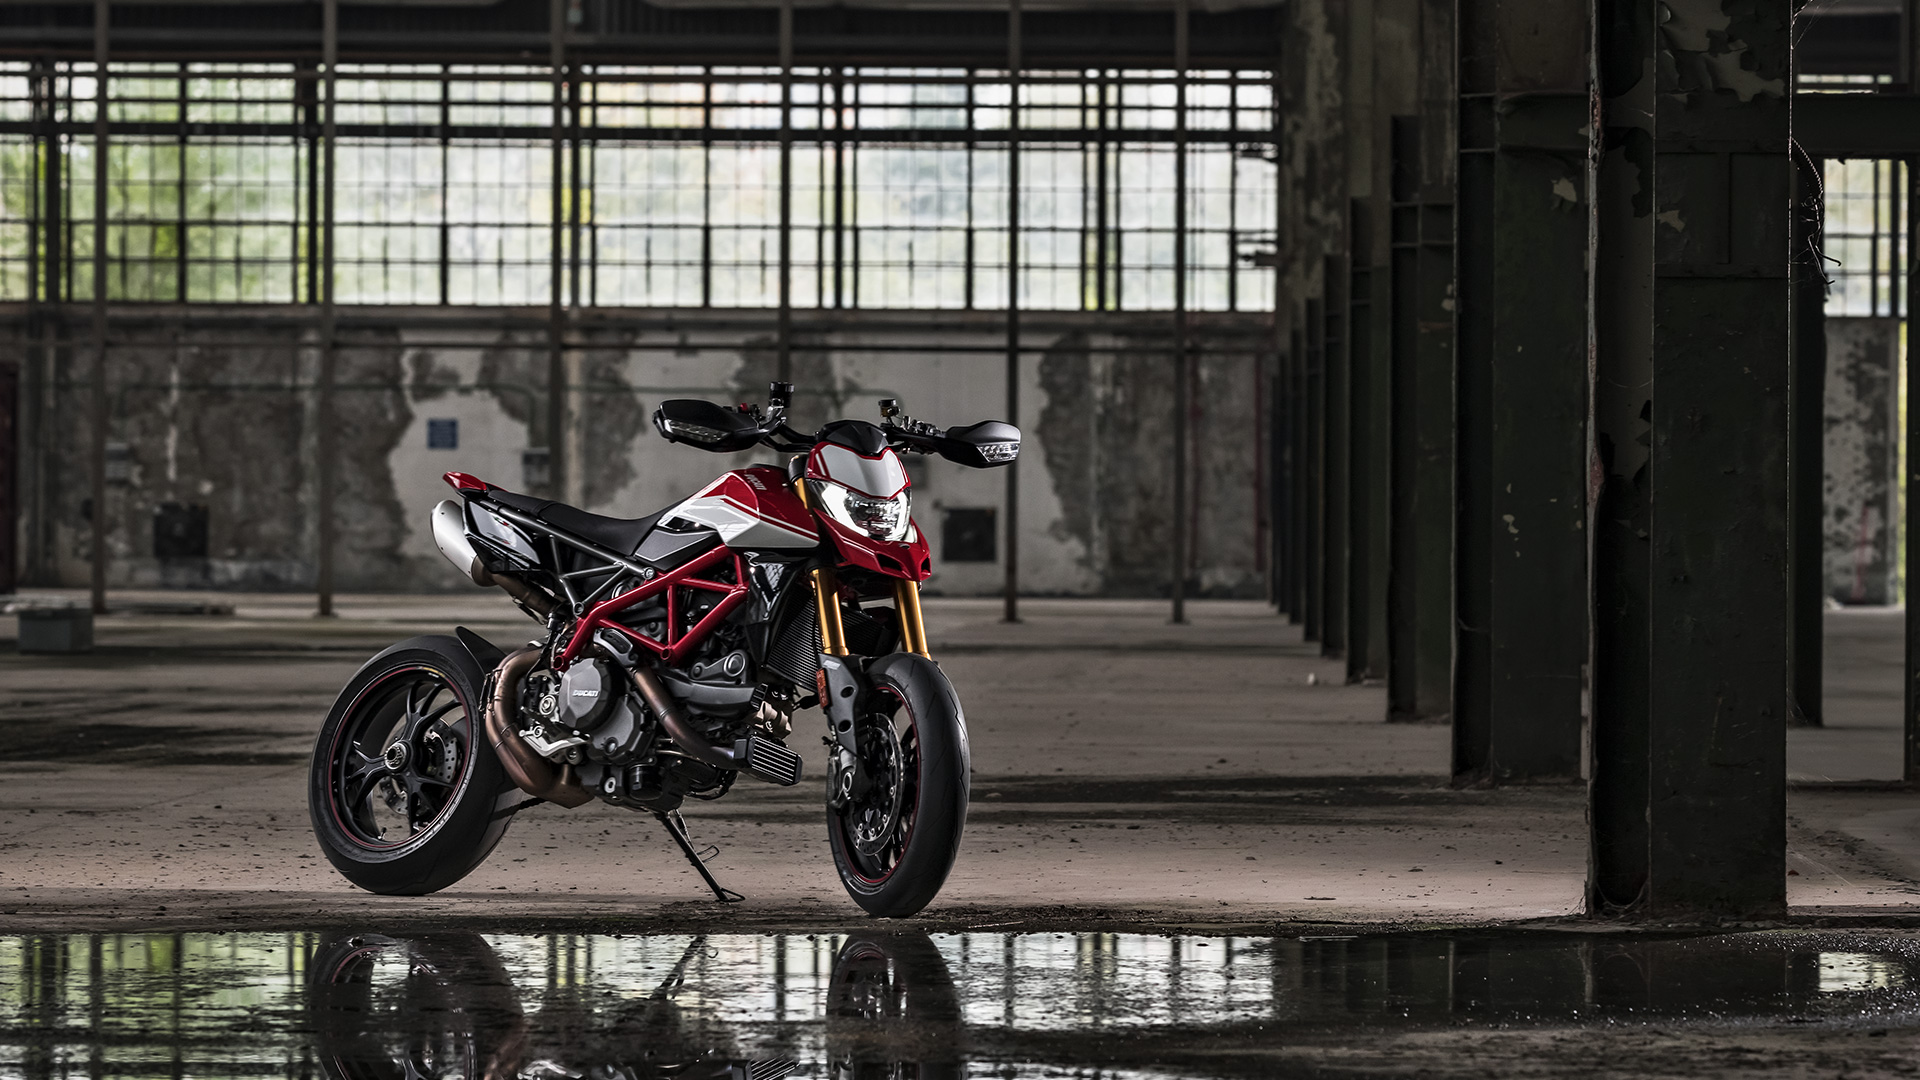 Hypermotard-950-SP-MY19-Torino-08-Galler